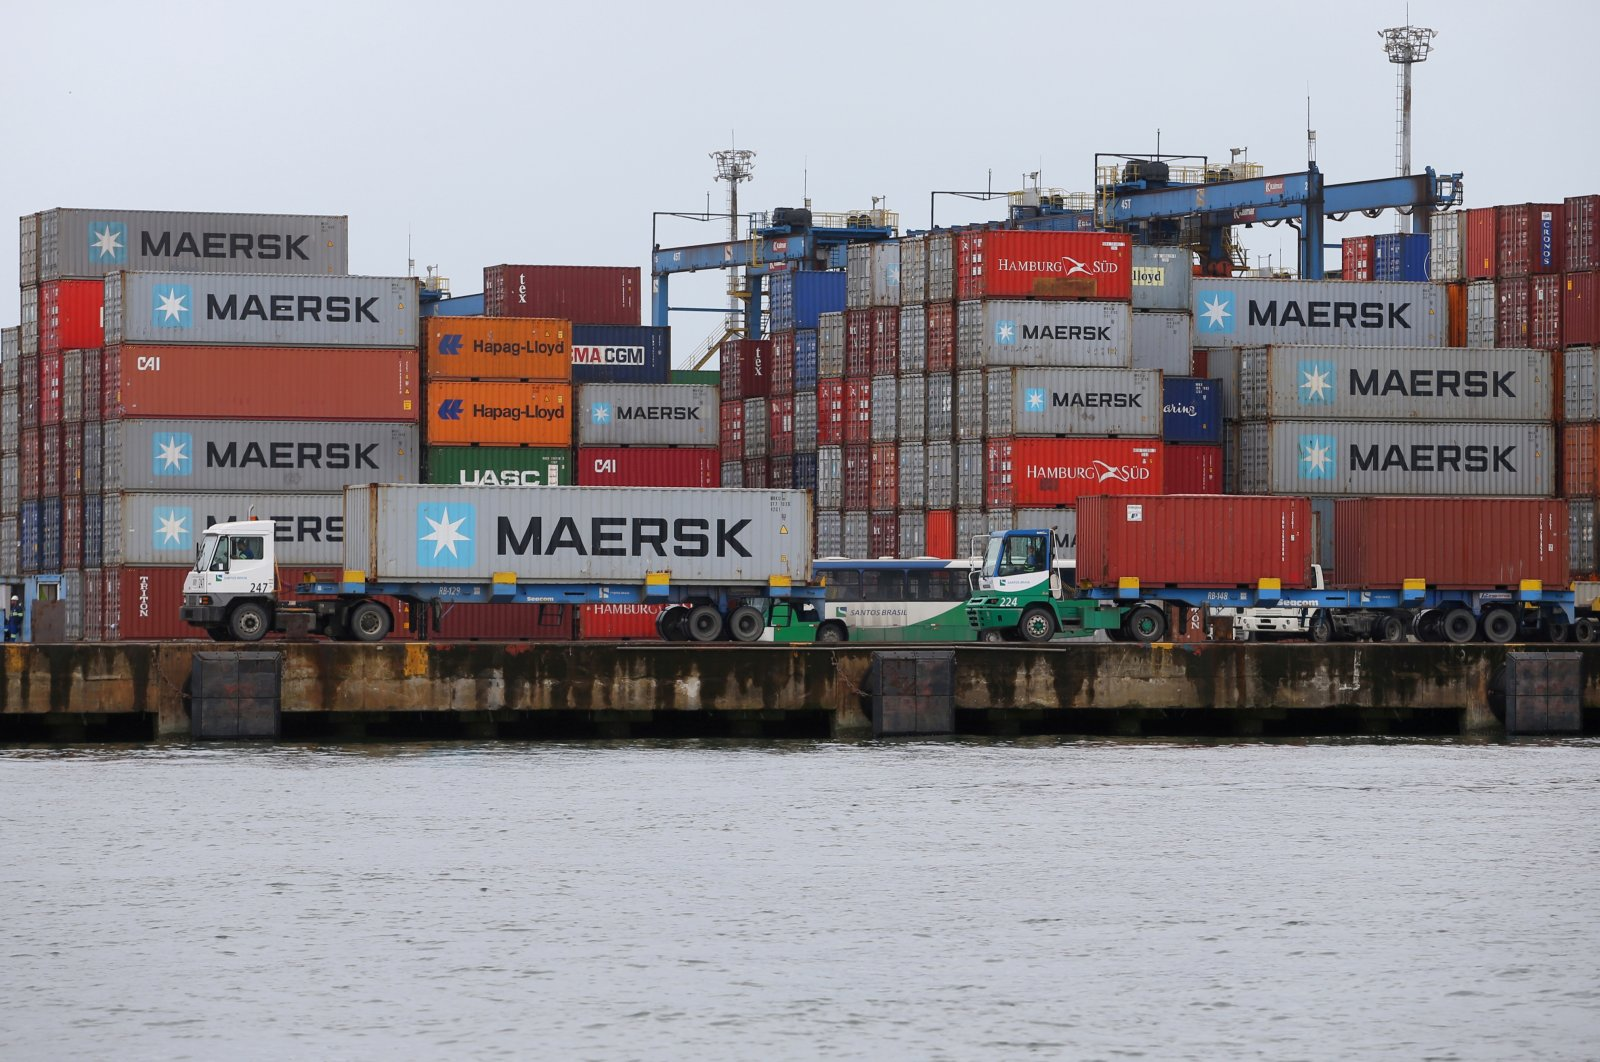 Maersk containers are seen at the Port of Santos, Brazil, Sept. 23, 2019. (Reuters File Photo)